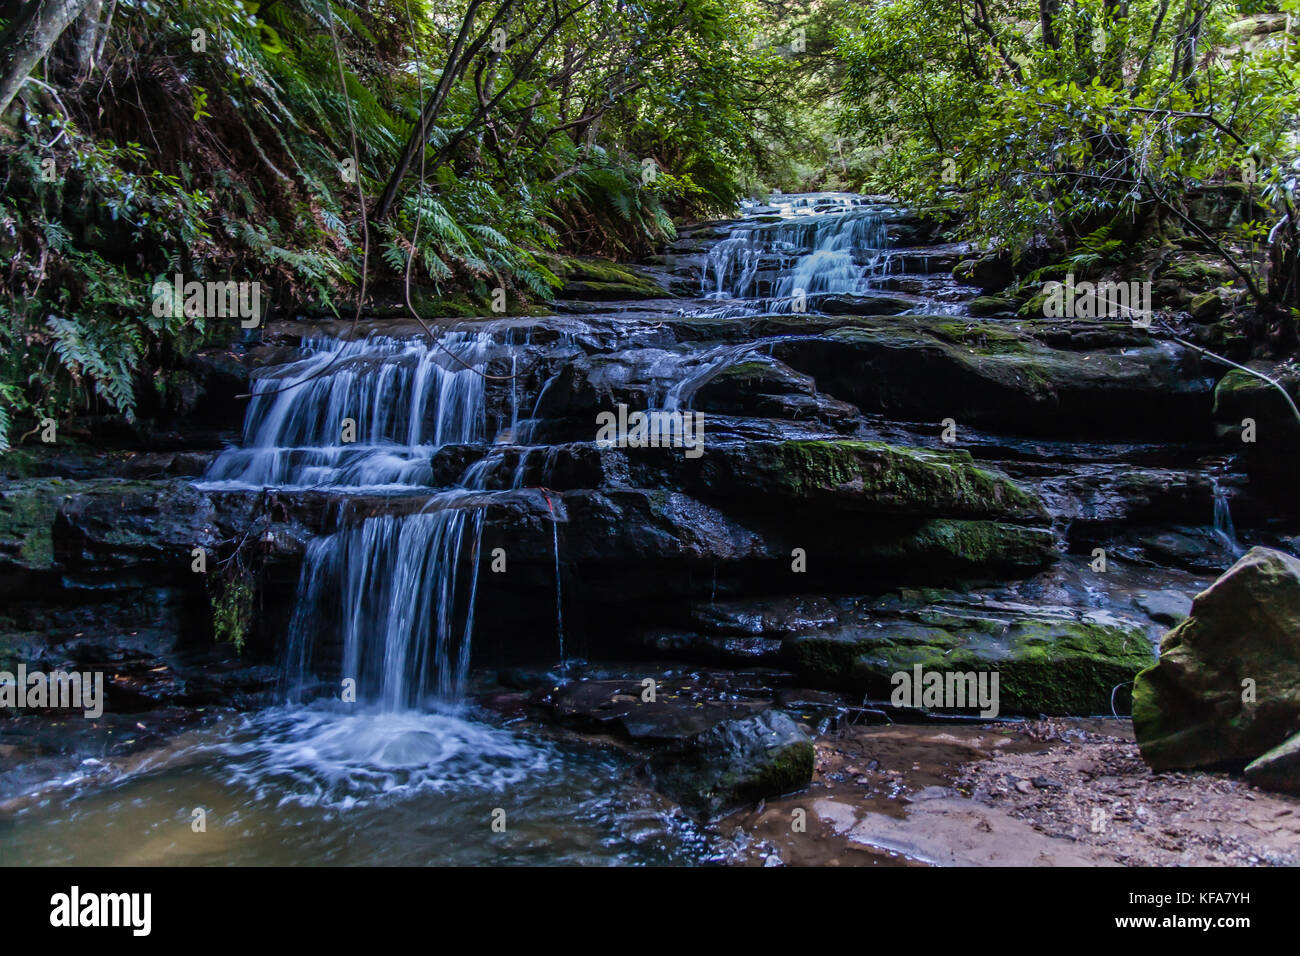 The Leura Cascades, Blue Mountains National Park, NSW, Australia Stock Photo